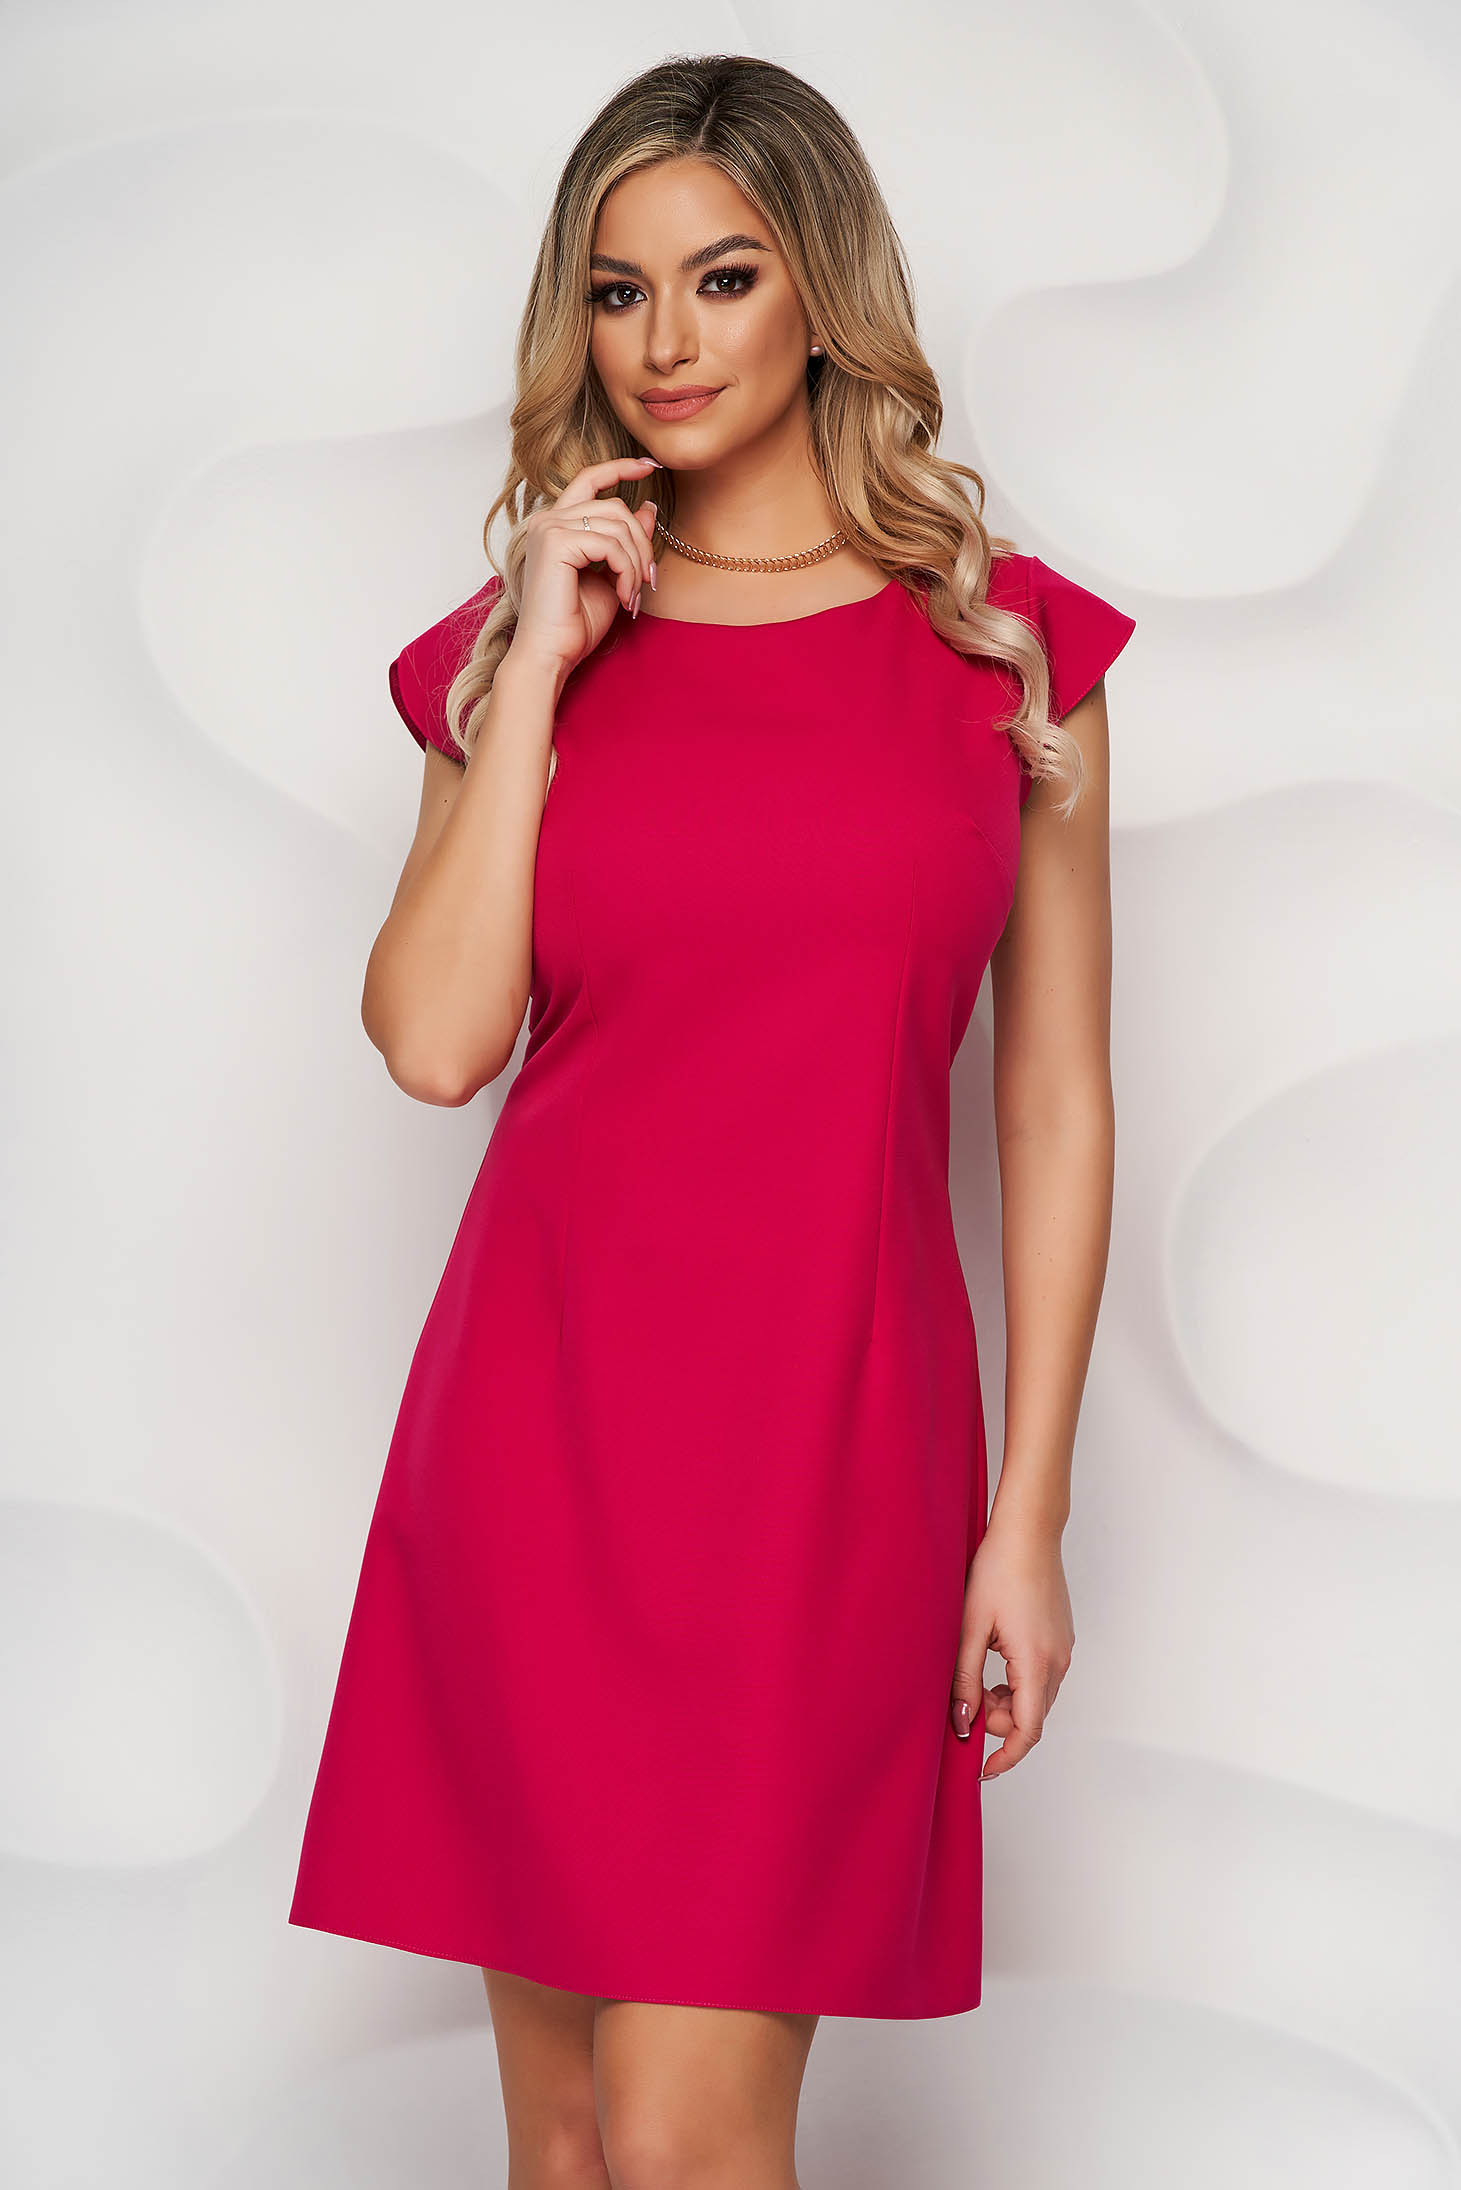 Fuchsia dress a-line slightly elastic fabric with rounded cleavage